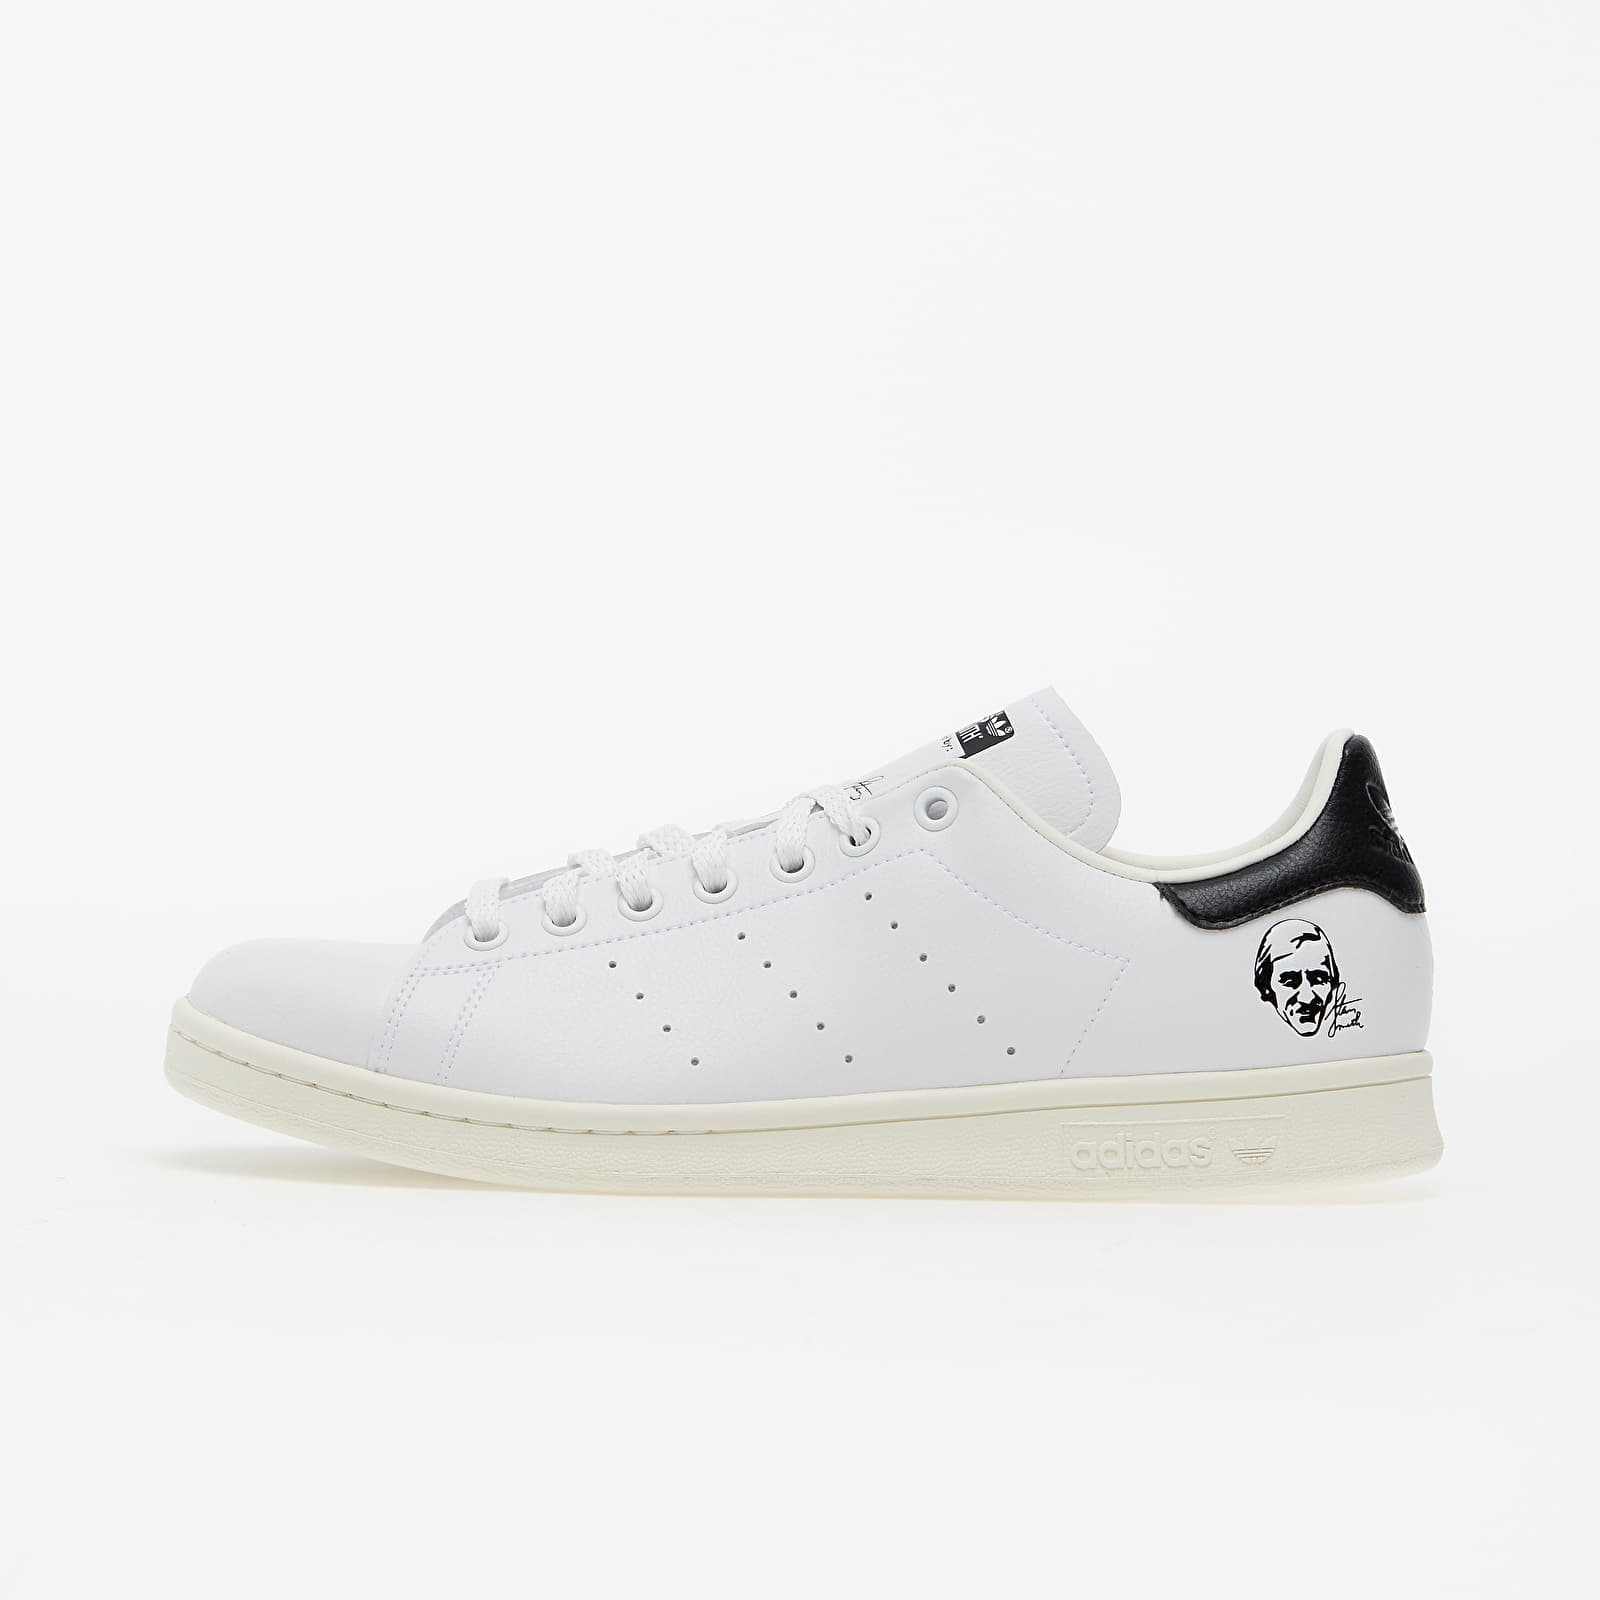 adidas Stan Smith Off White/ Ftw White/ Core Black EUR 46